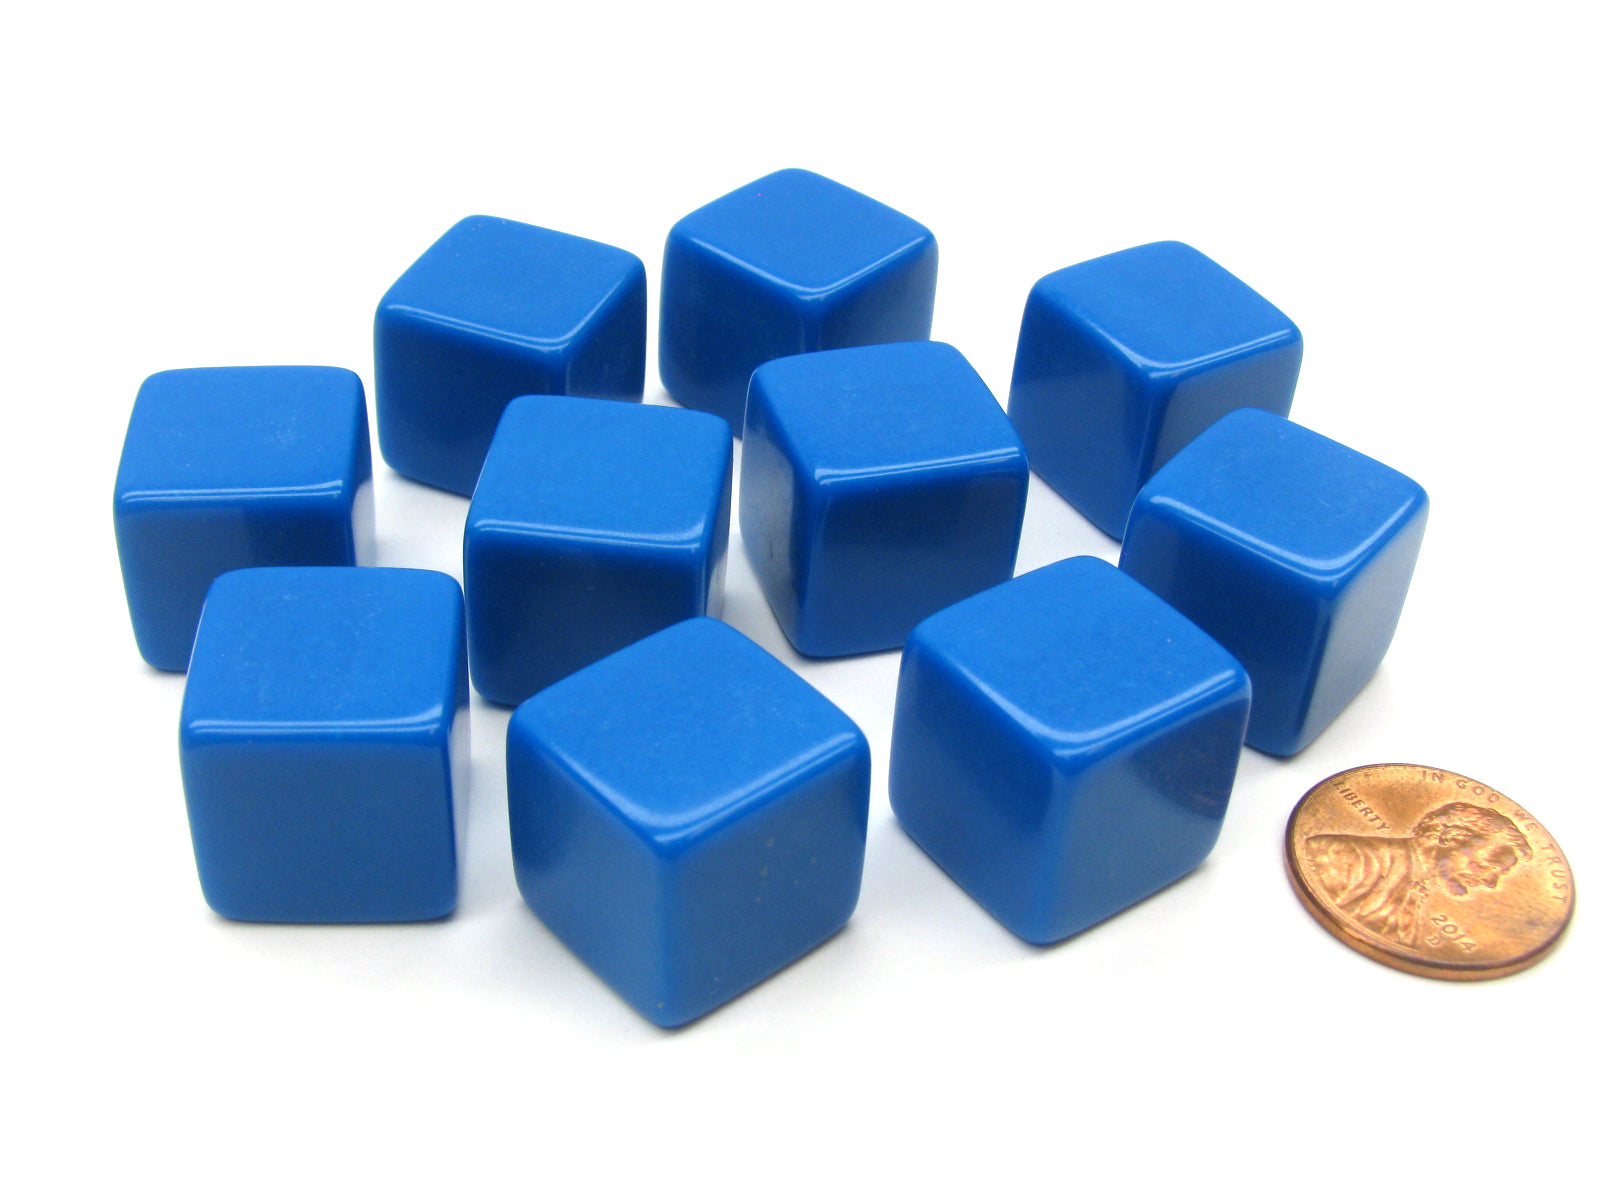 Set of 10 D6 16mm Blank Opaque Dice - Blue